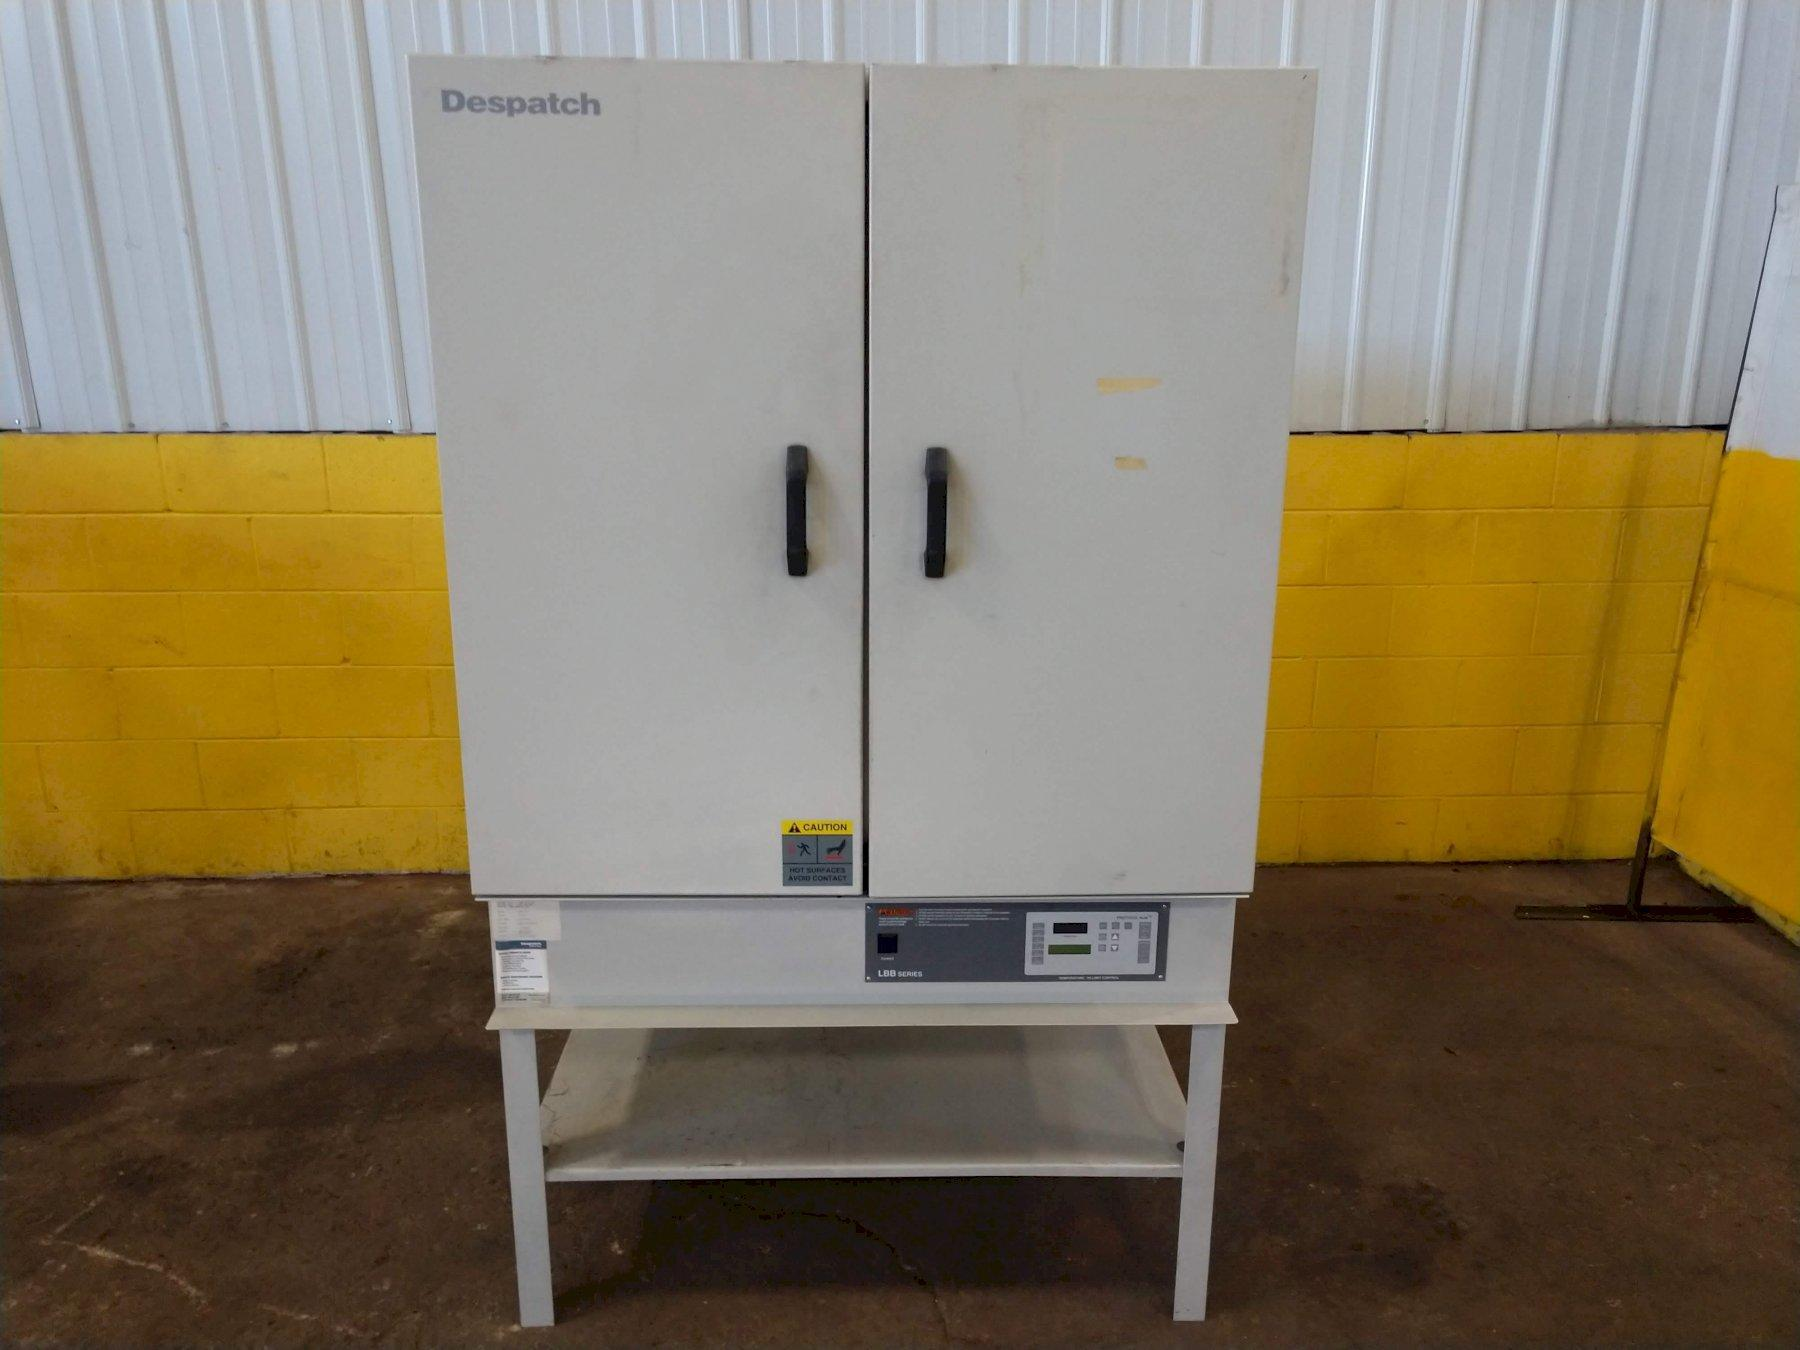 "400 DEGREE X 37"" W X 24"" D X 35"" H DESPACH SERIES LBB2-18-1 ELECTRICAL OVEN: STOCK 13686"